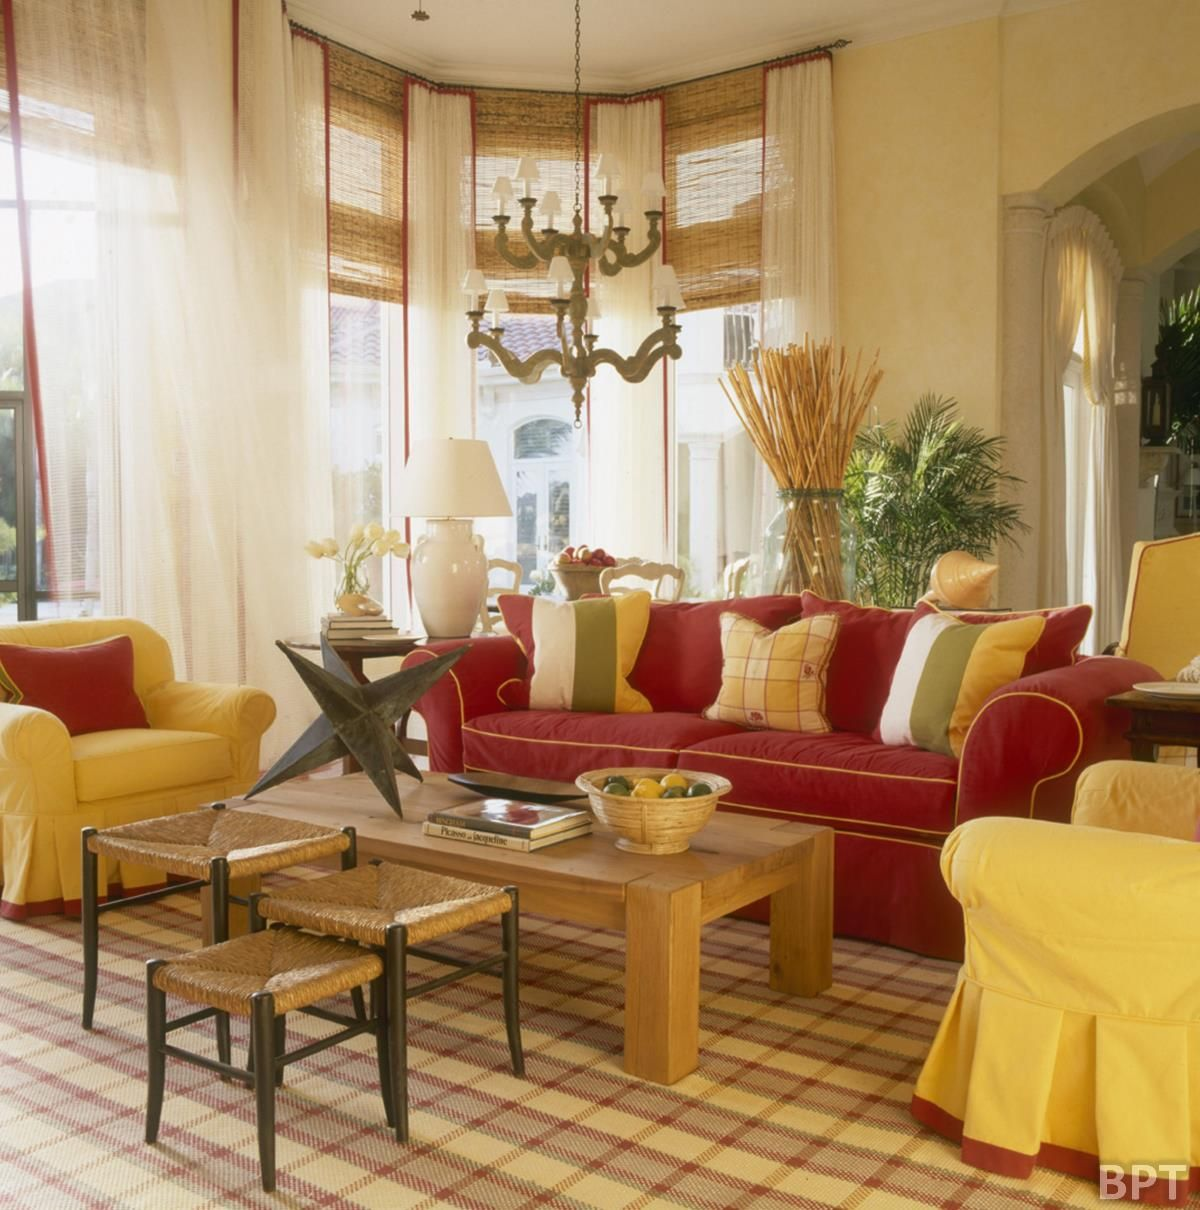 Clic Interior Living Room Design With Yellow And Red Sofa Furniture Ideas Above The Checkered Rug Flooring Decorating Traditional Wooden